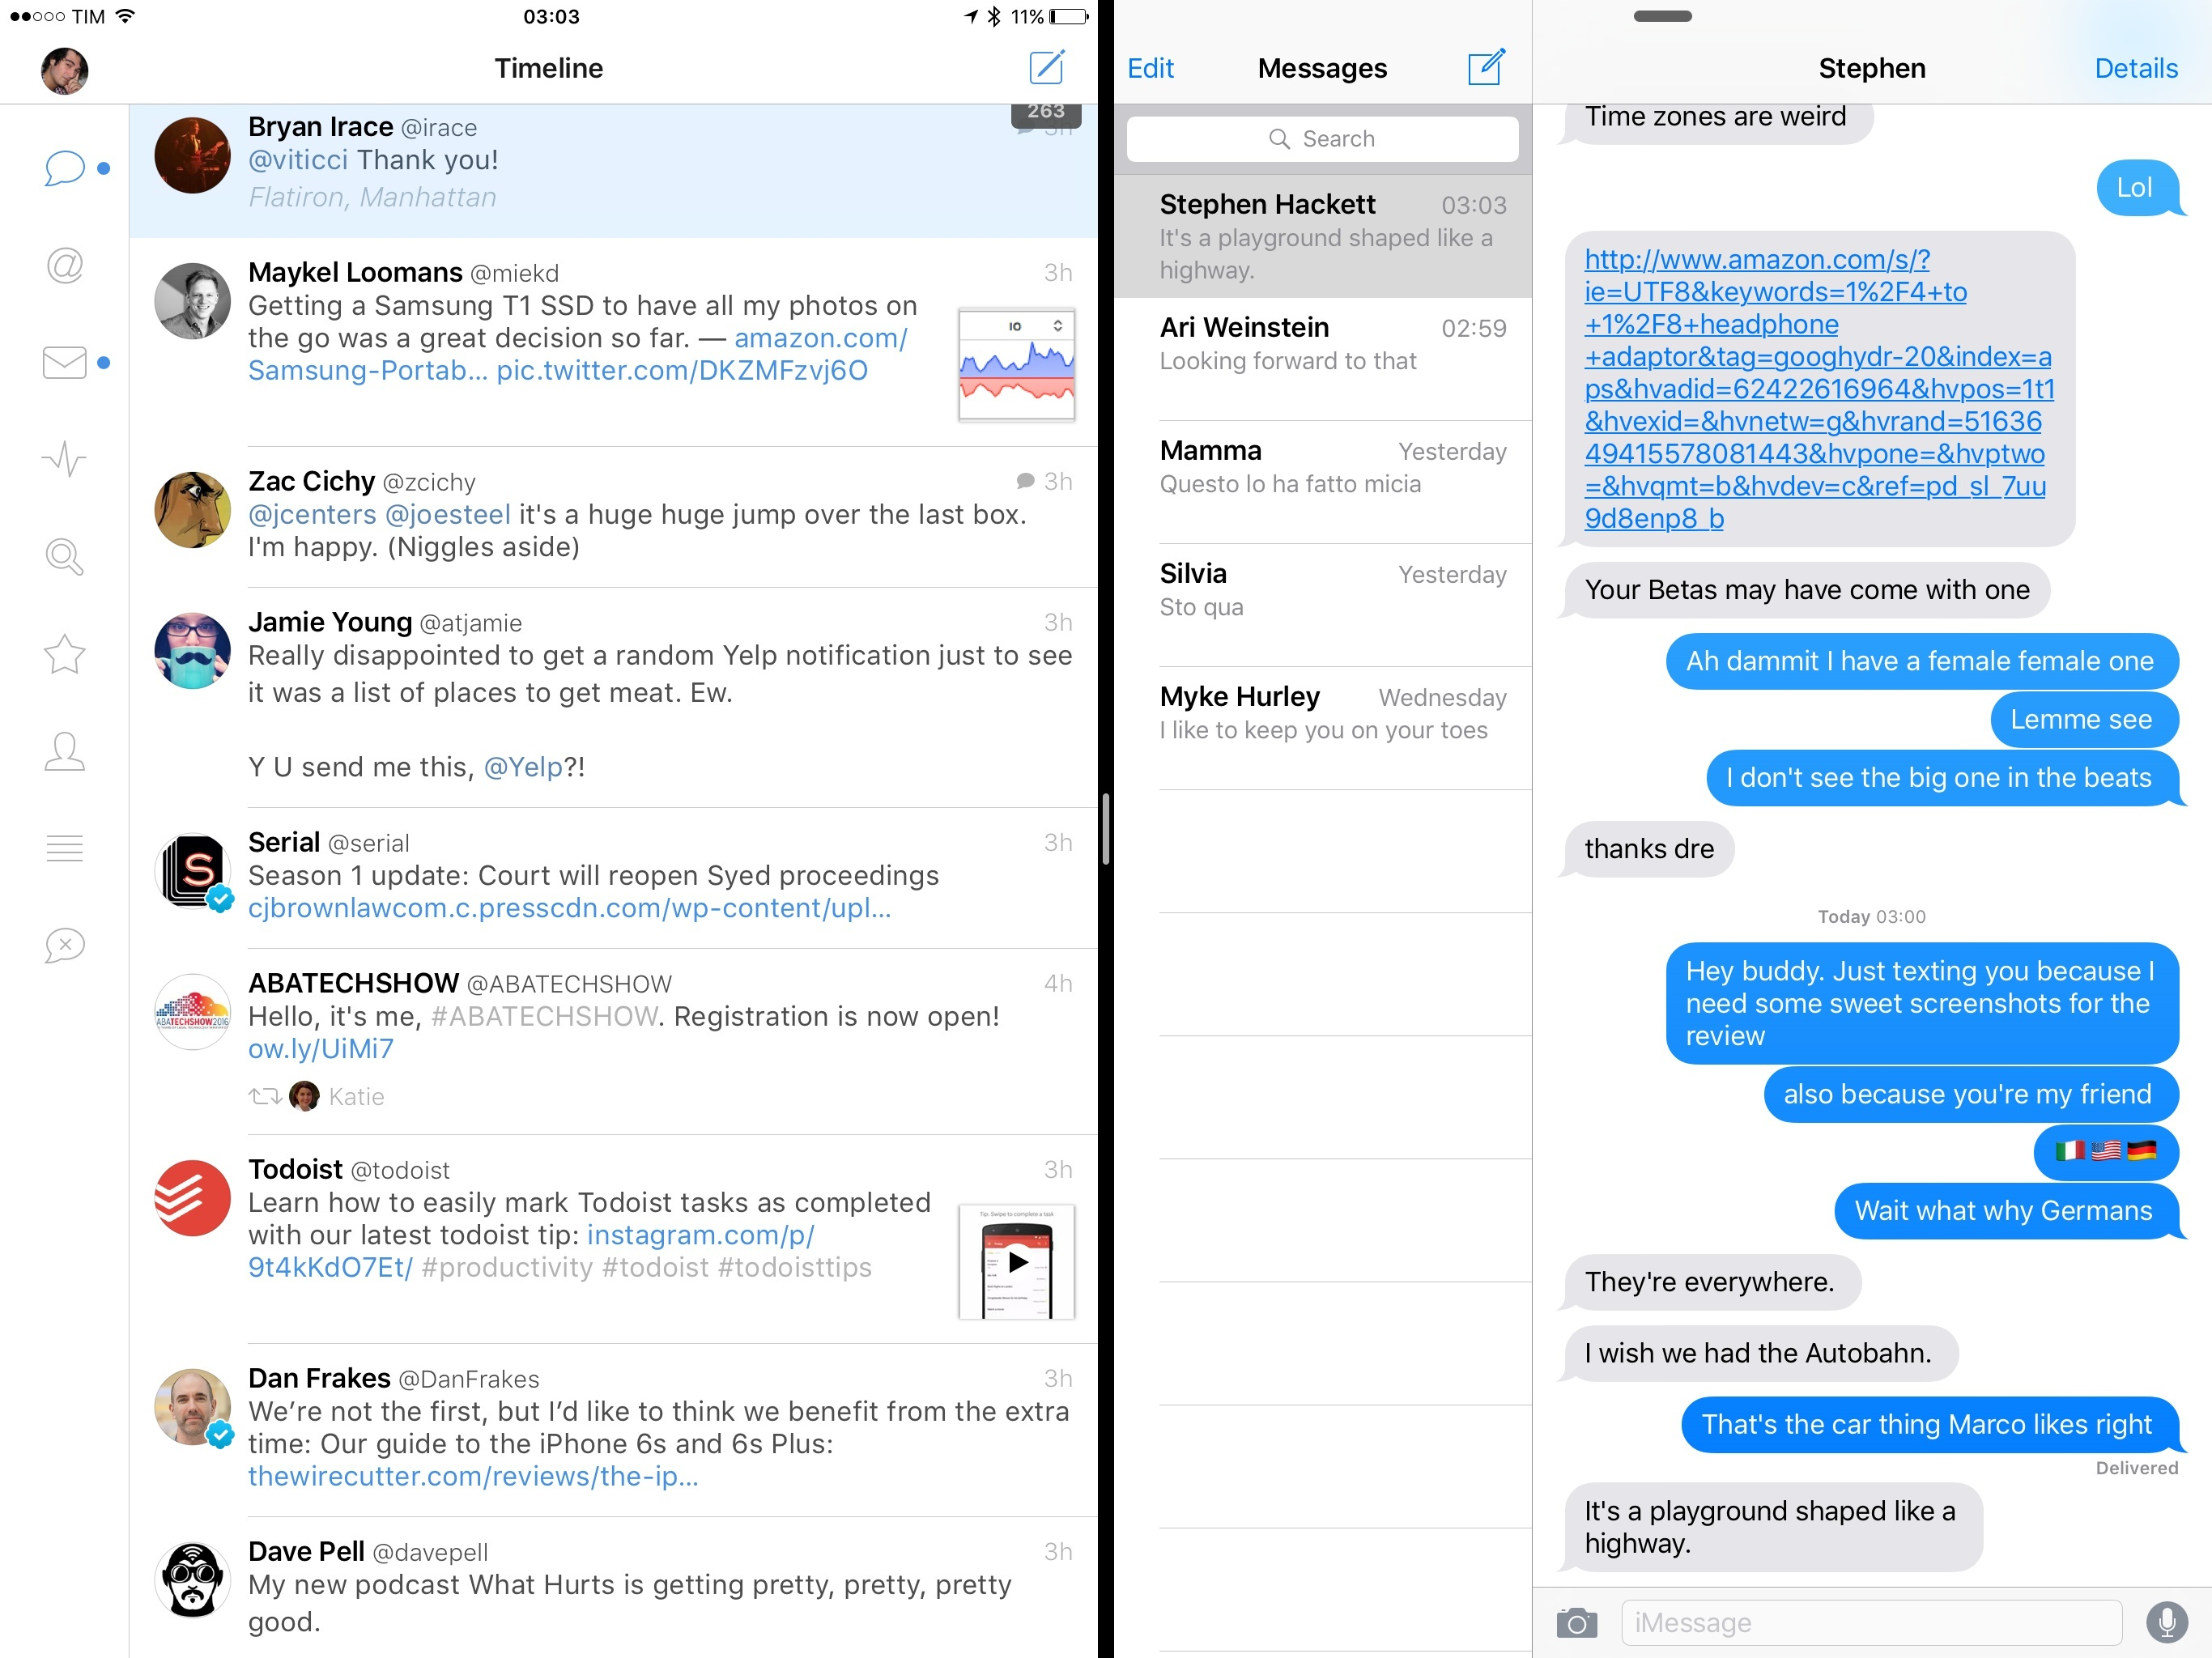 Messages shows a conversation sidebar on the iPad Pro.